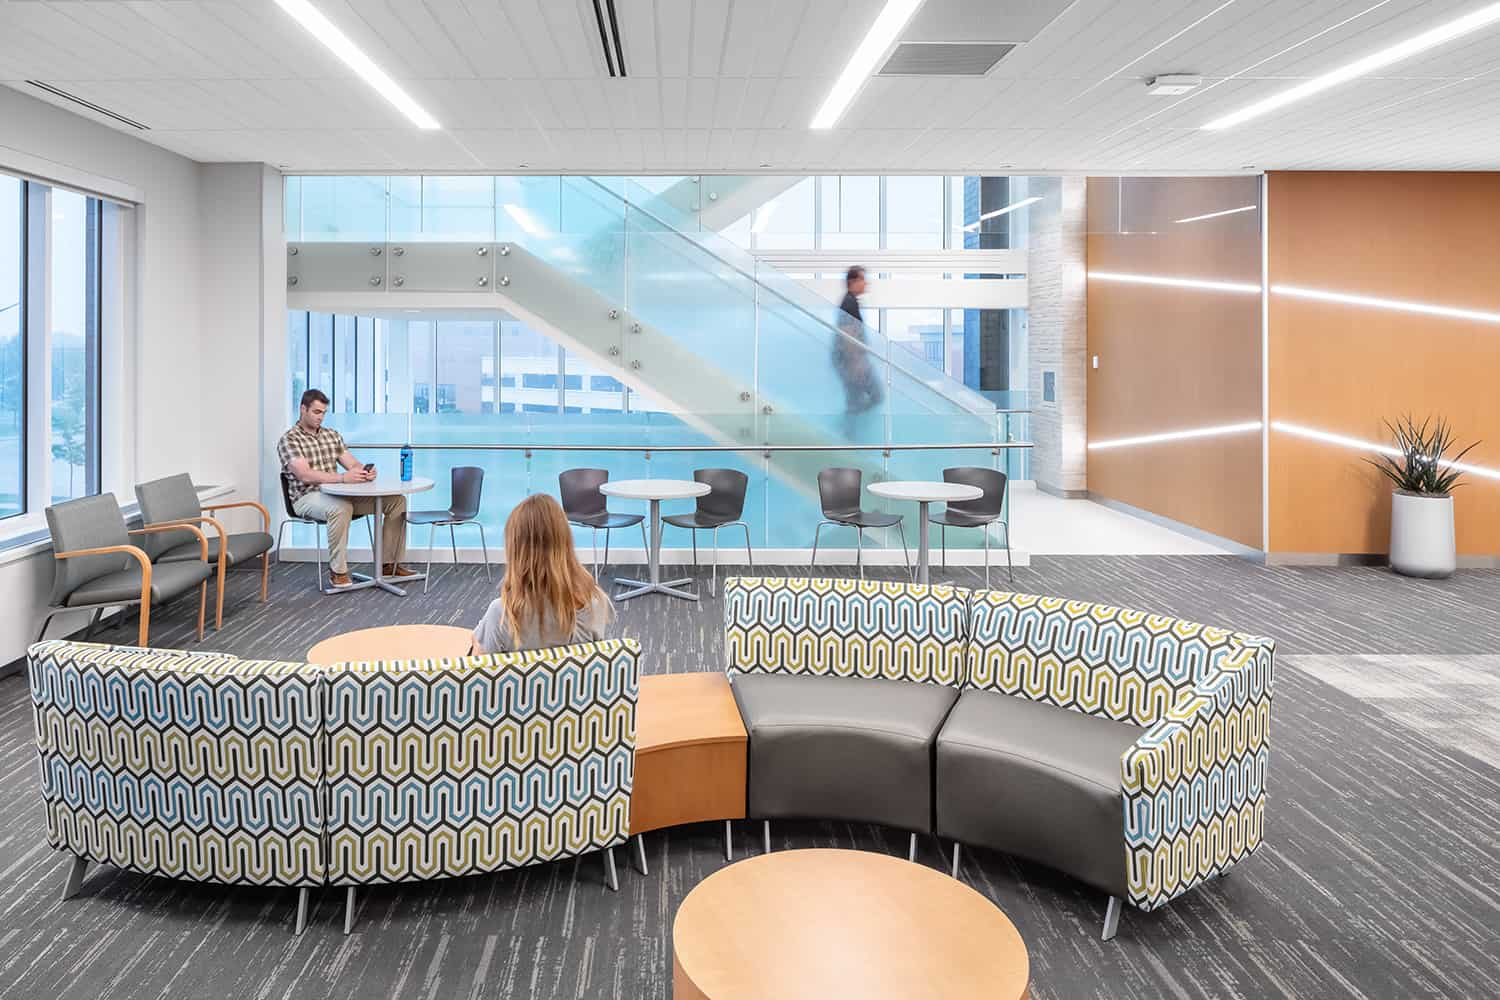 A waiting area with a variety of seating options and access to abundant daylight from the glass-enclosed stairwell.